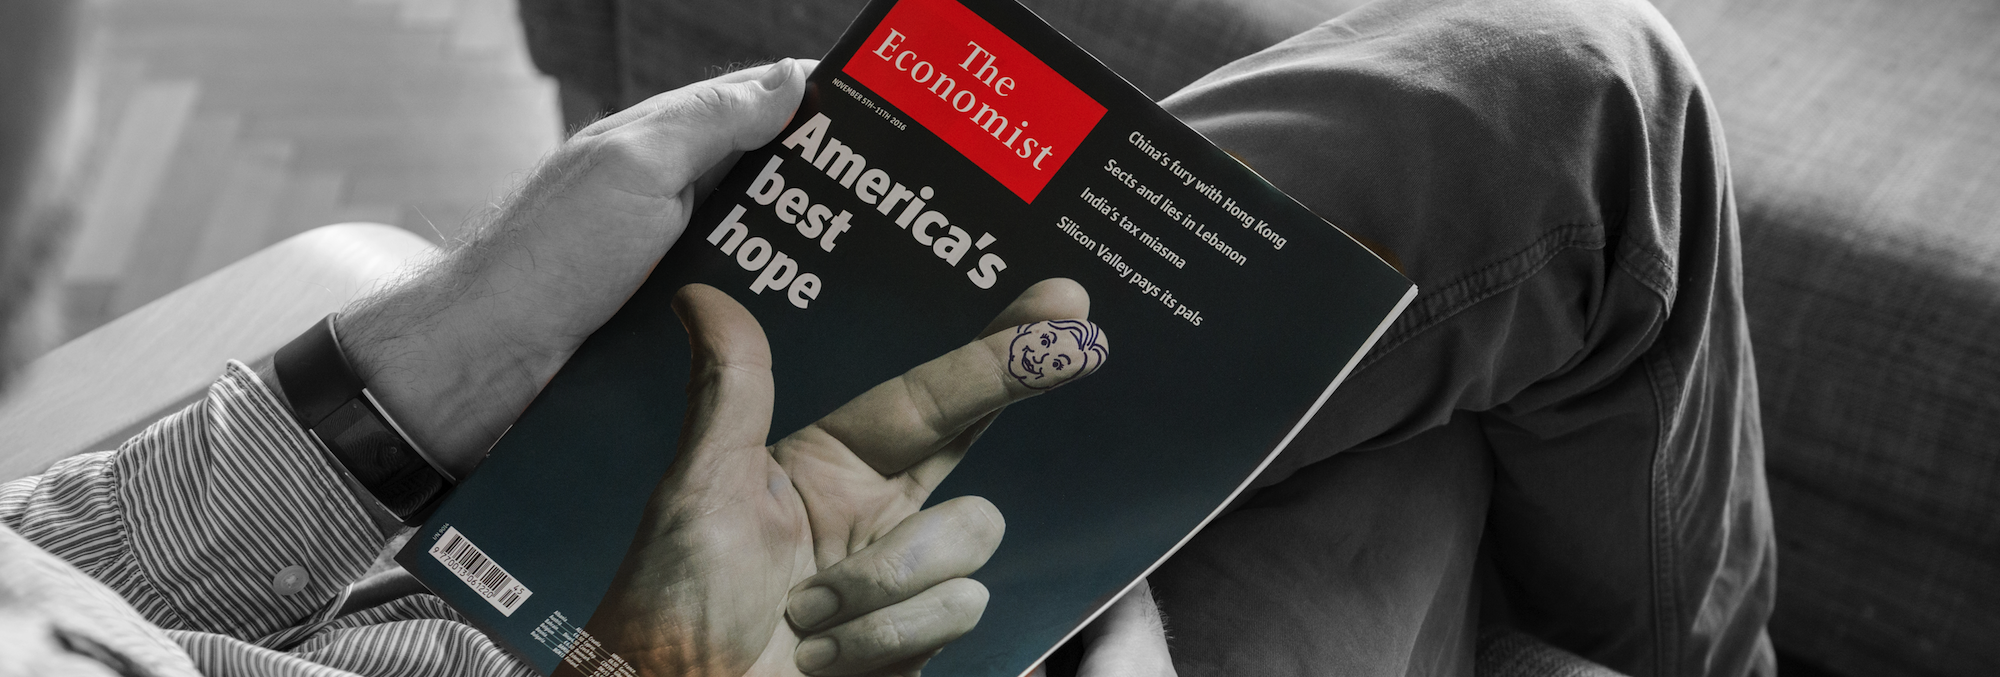 The Economist image